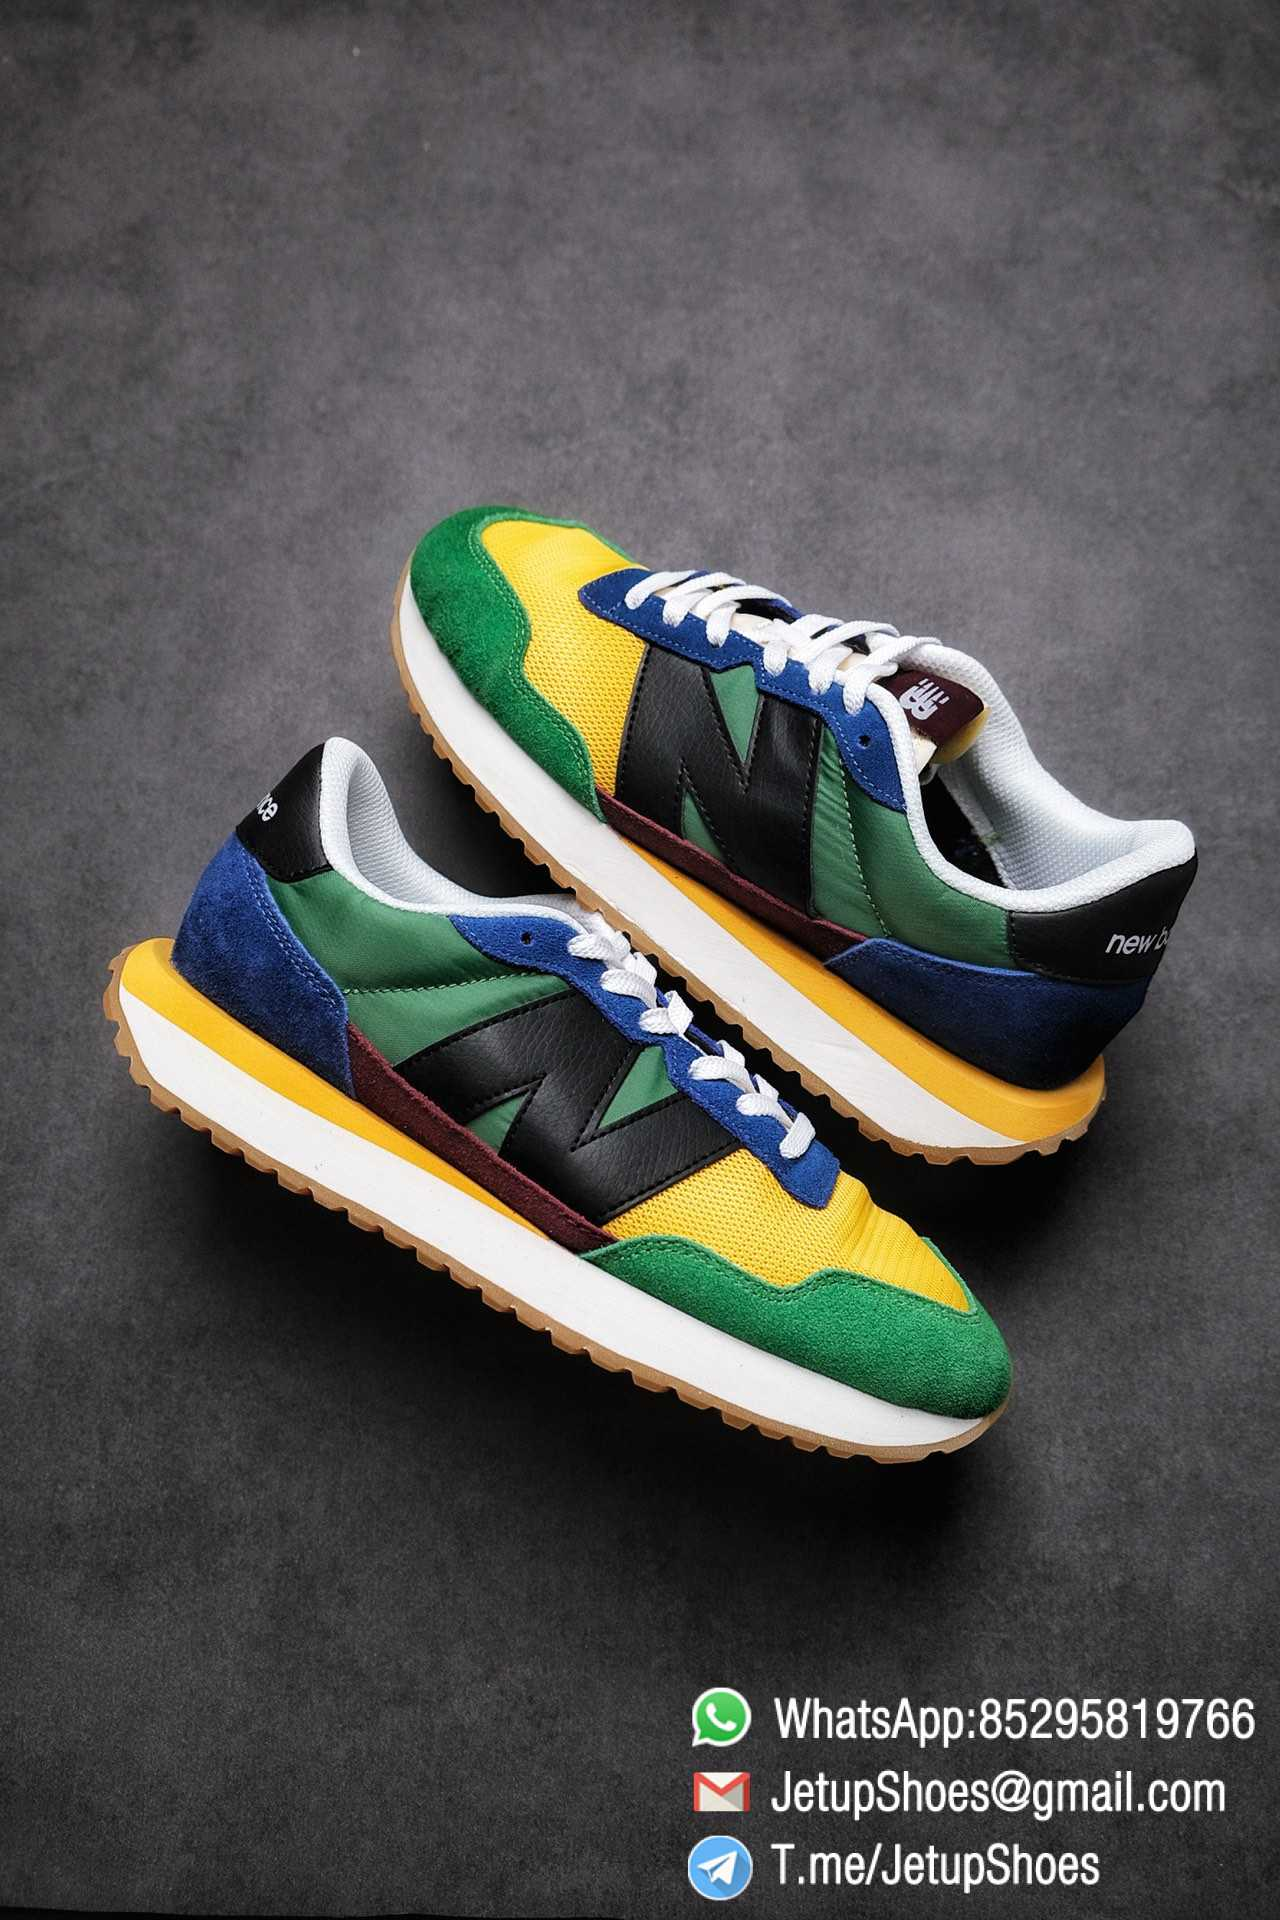 Best Replica New Balance 237 Green Blue Yellow Multi Color SKU MS237LB1 High Quality Fake Running Shoes 01